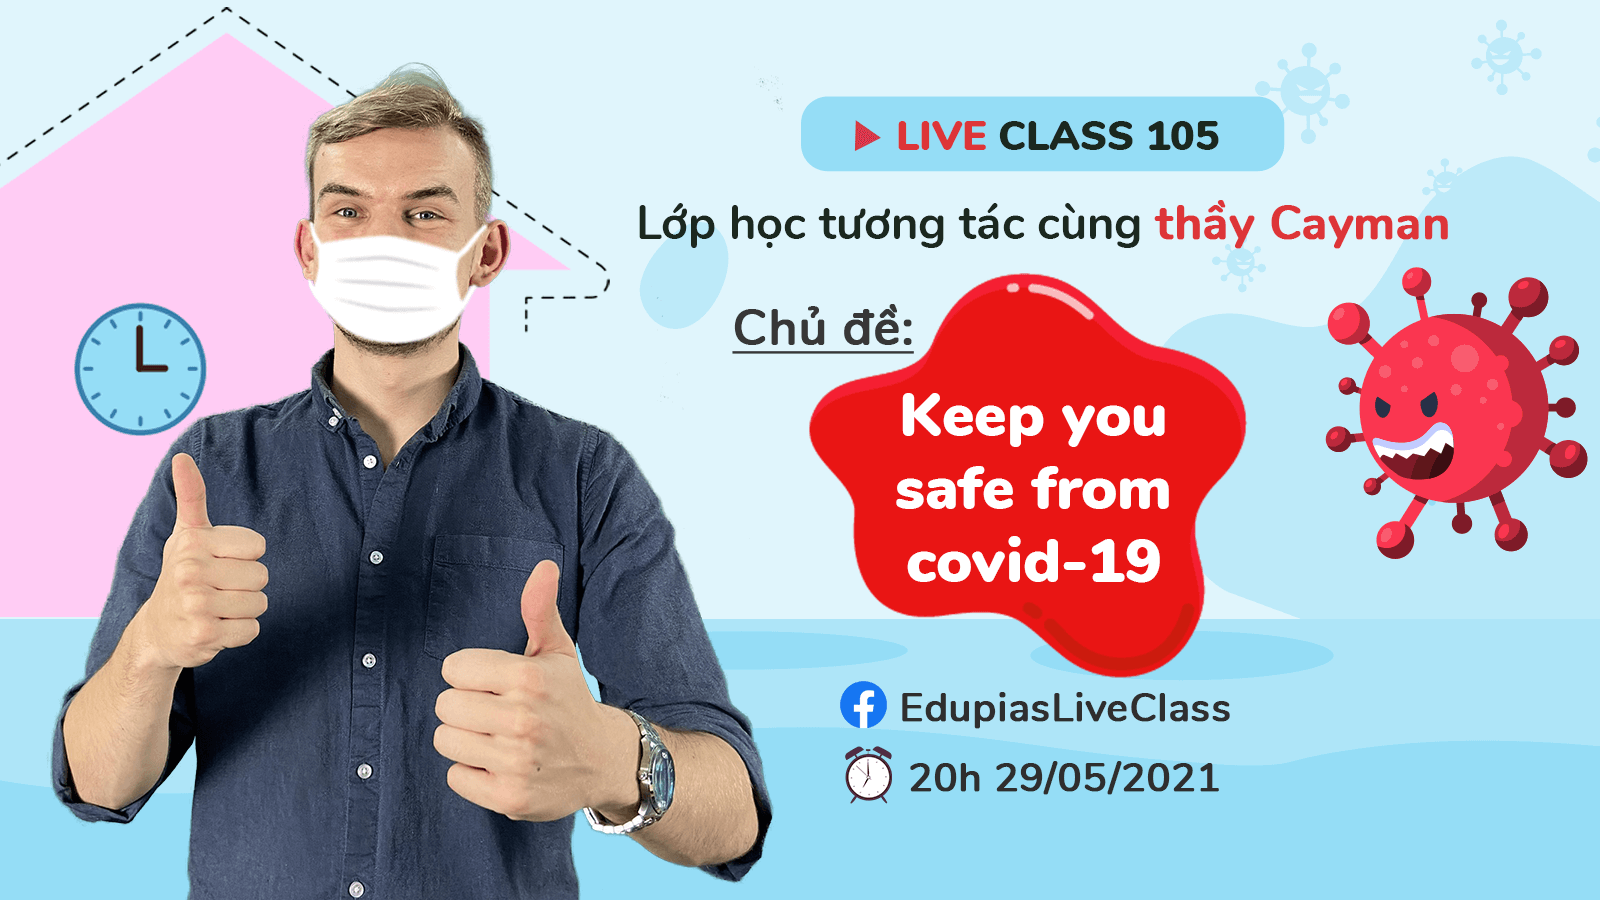 Live class tuần 105 - Chủ đề: Keep you safe from covid 19